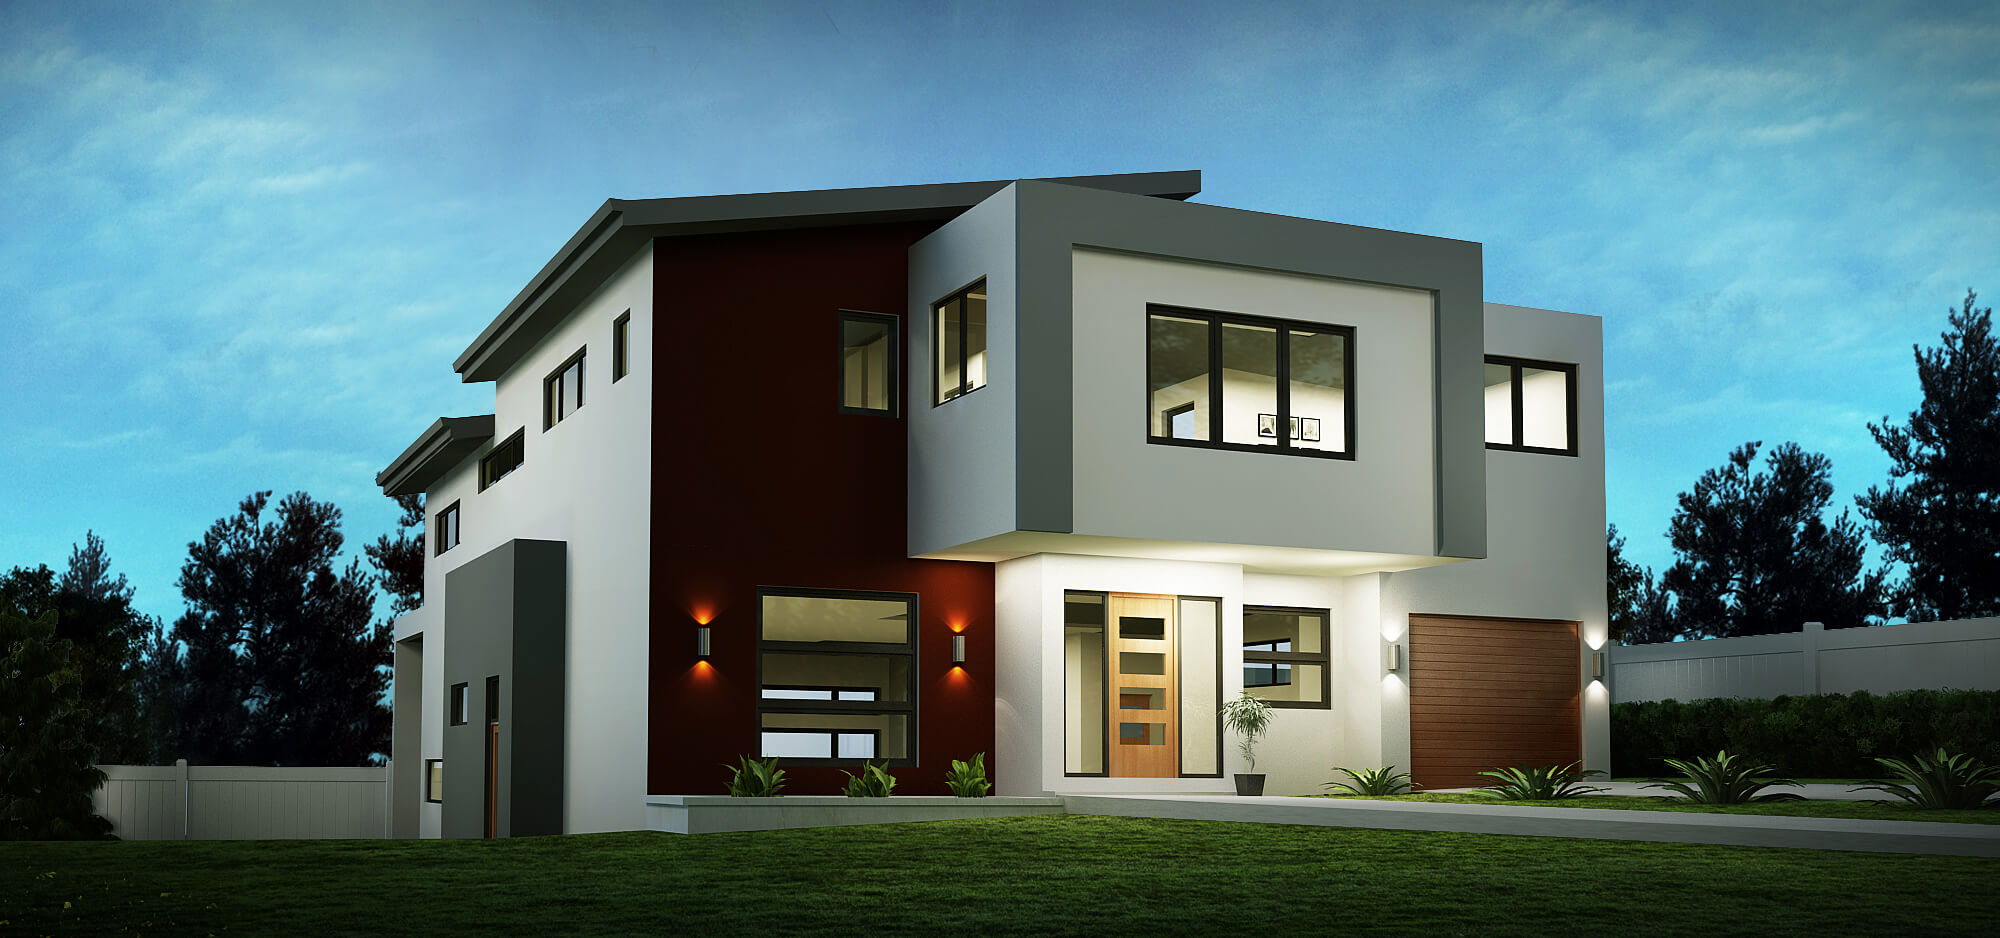 Sloping house block designs custom home designs Custom home design